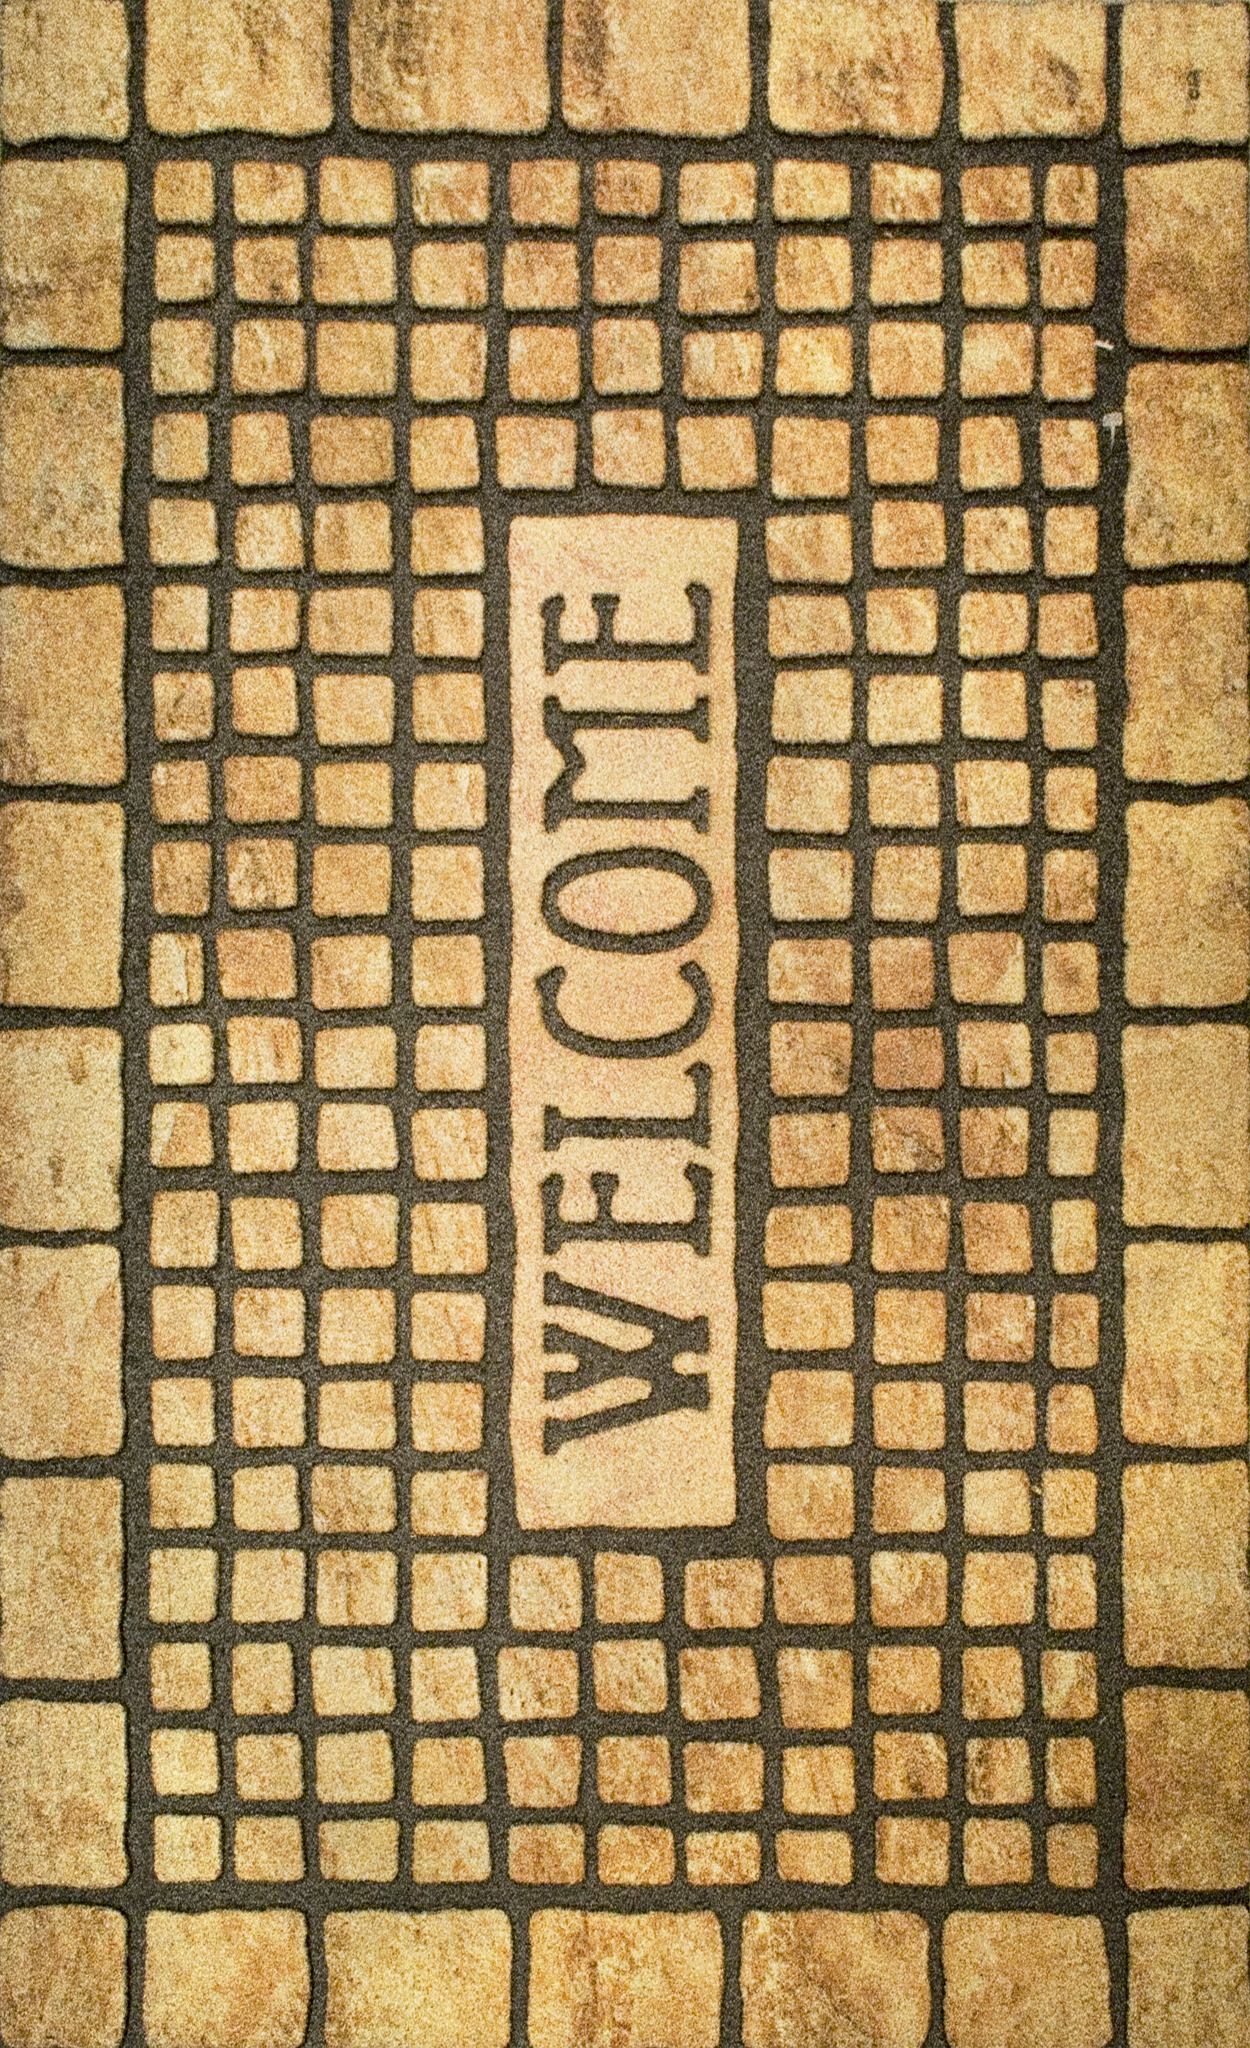 Antique Bricks Mat.jpg